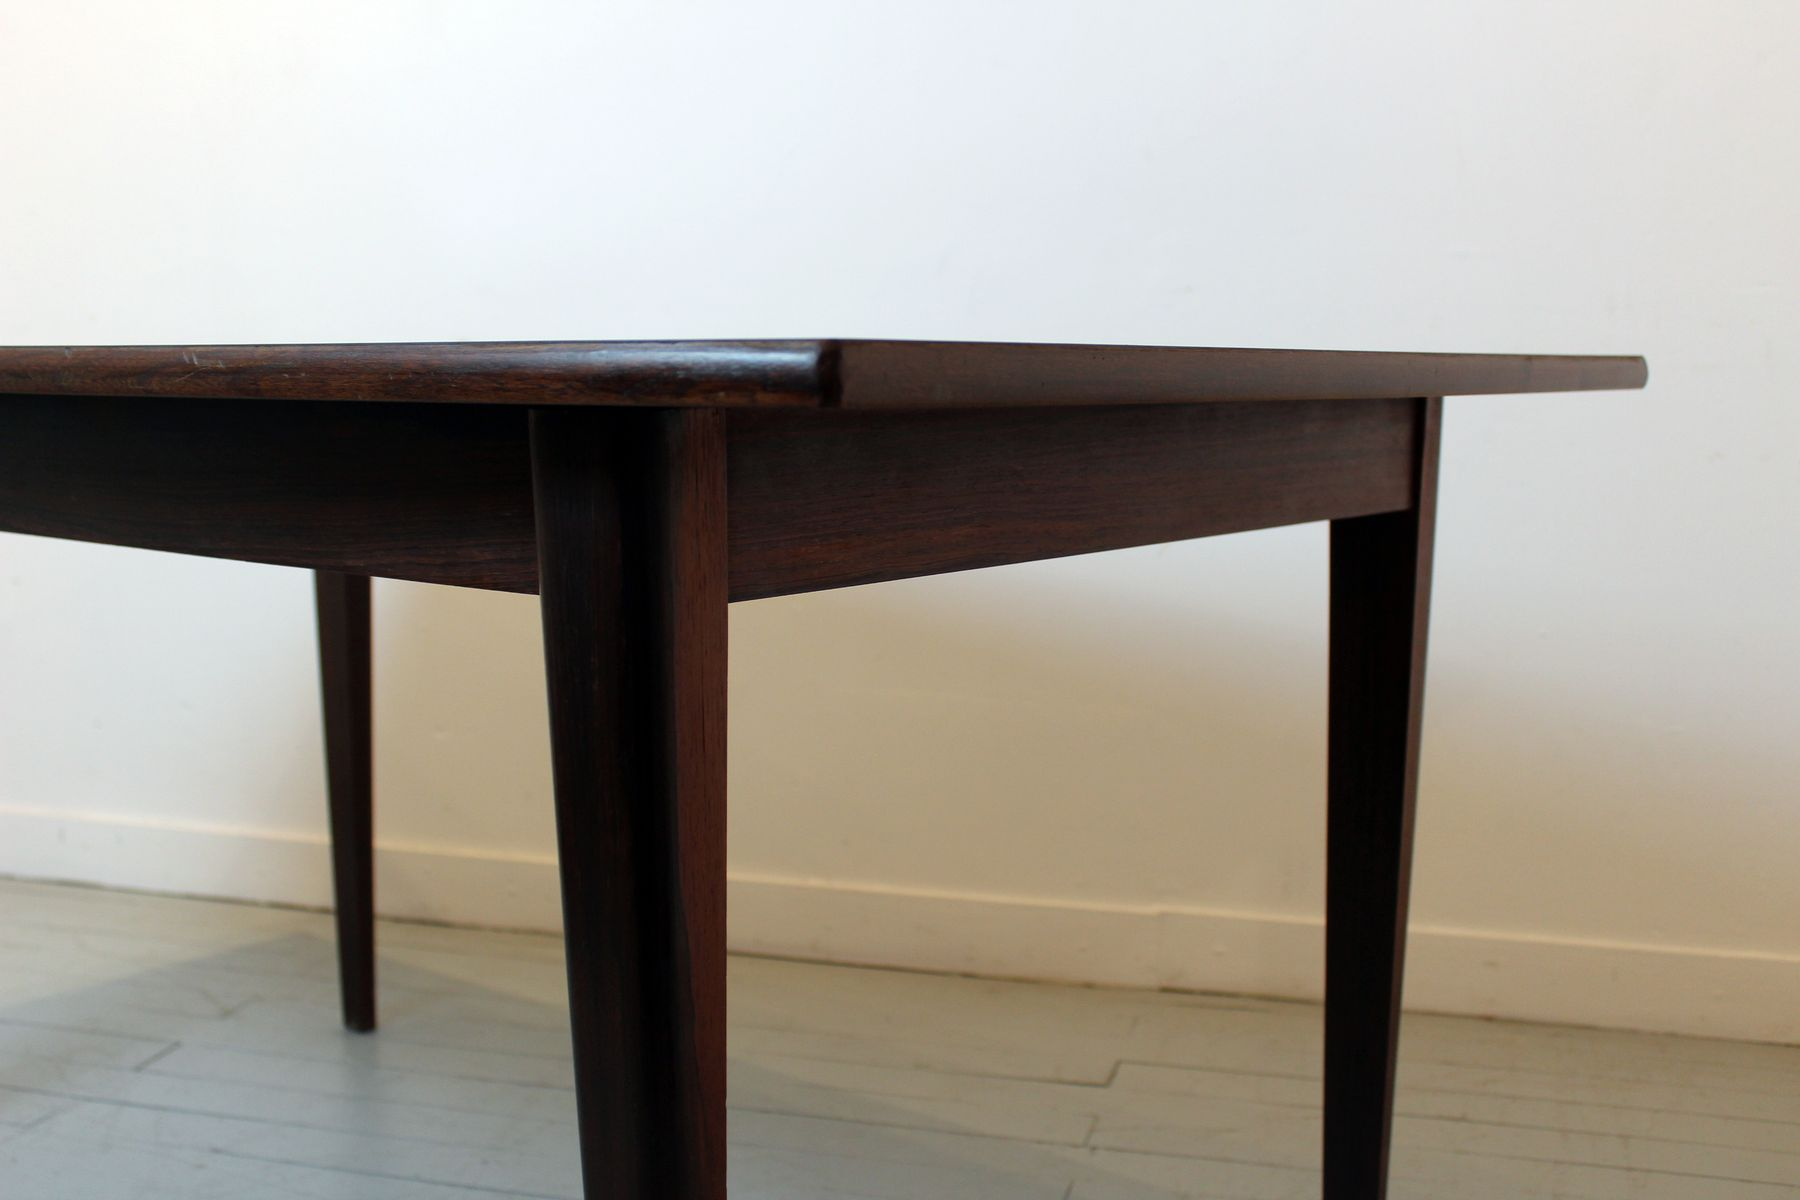 french dining table from meuble nf 1960s for sale at pamono k meuble table